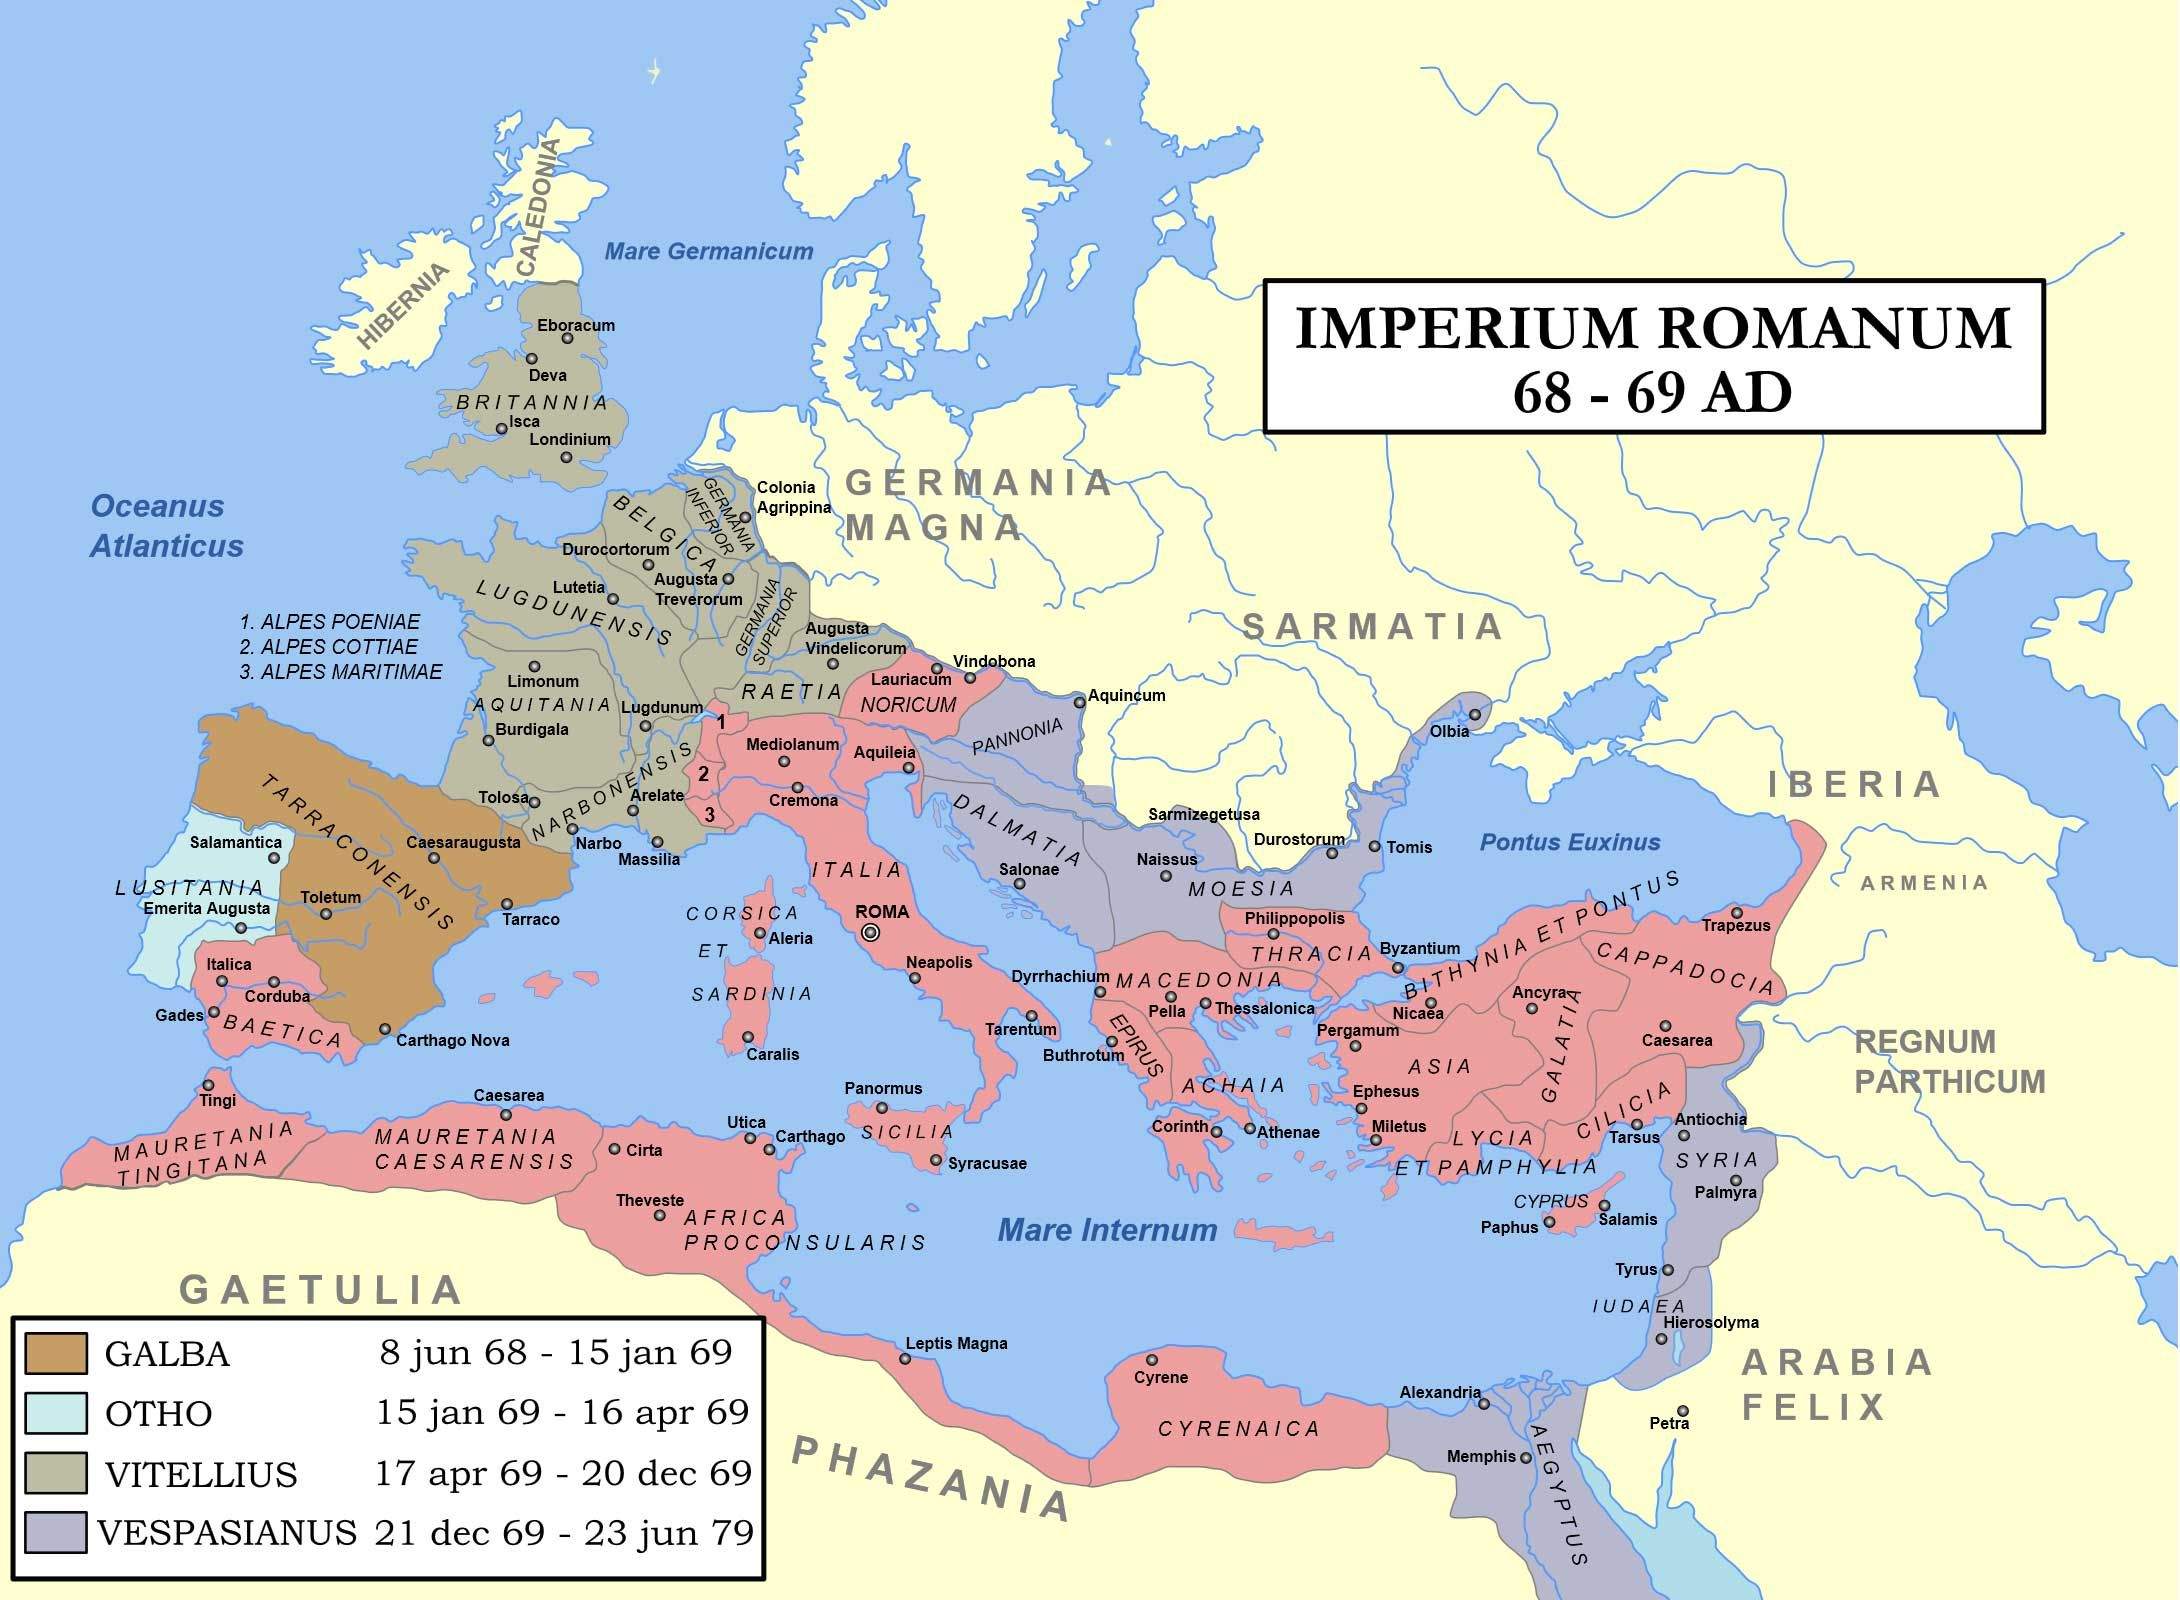 civilization the romans Top 10 greatest empires in history freikorptrasher june 22, 2010 share 1k stumble 96k tweet pin 521 +1 23 share 18 shares 98k the definition of an empire is: when a single entity has.